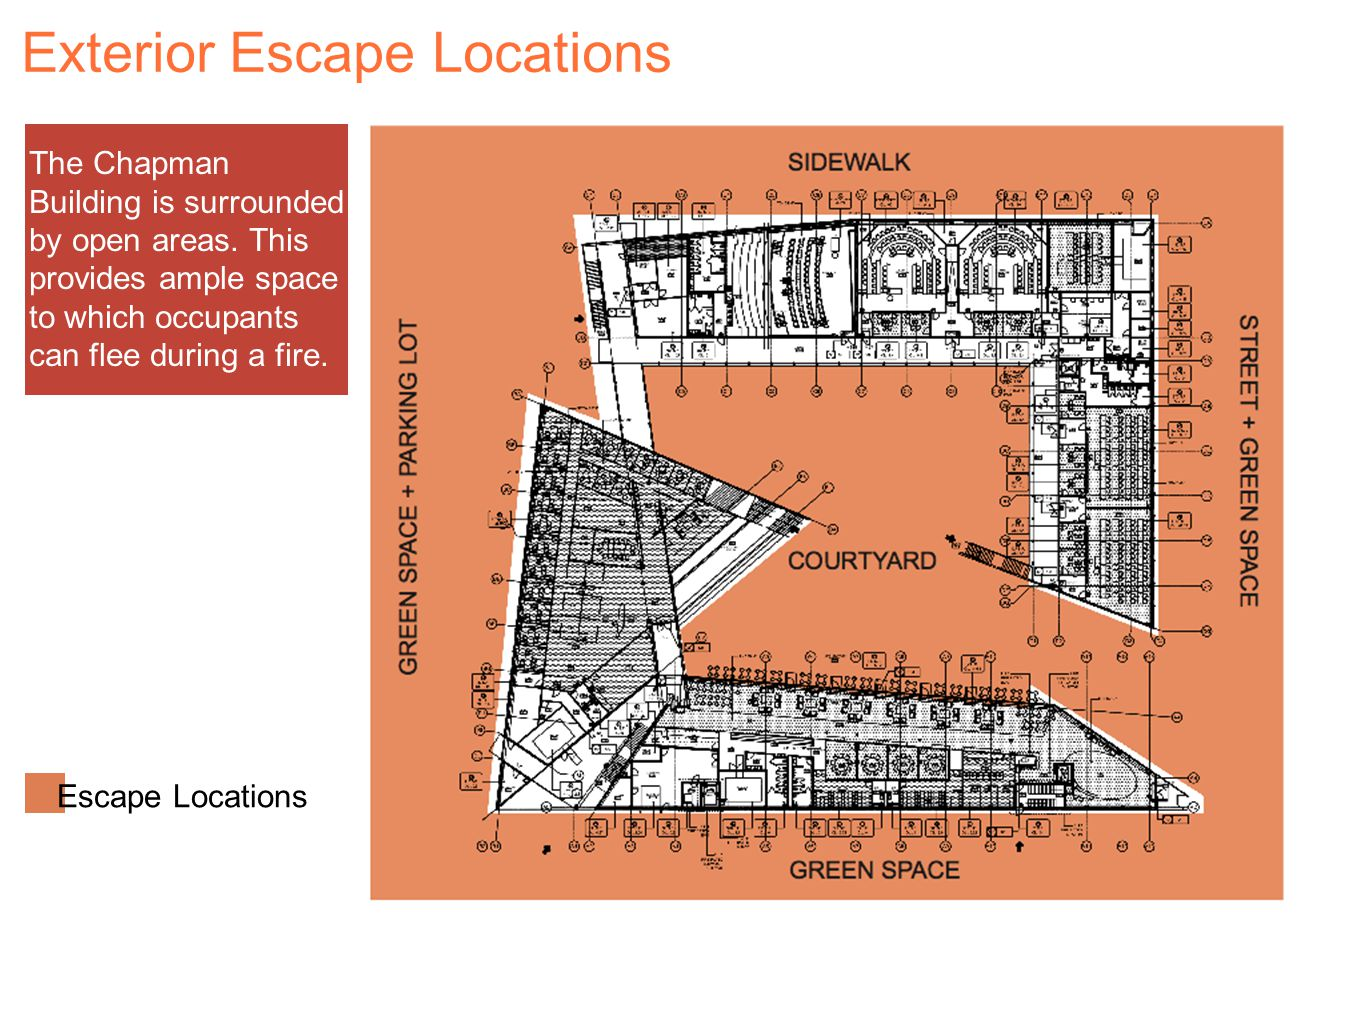 Exterior Escape Locations